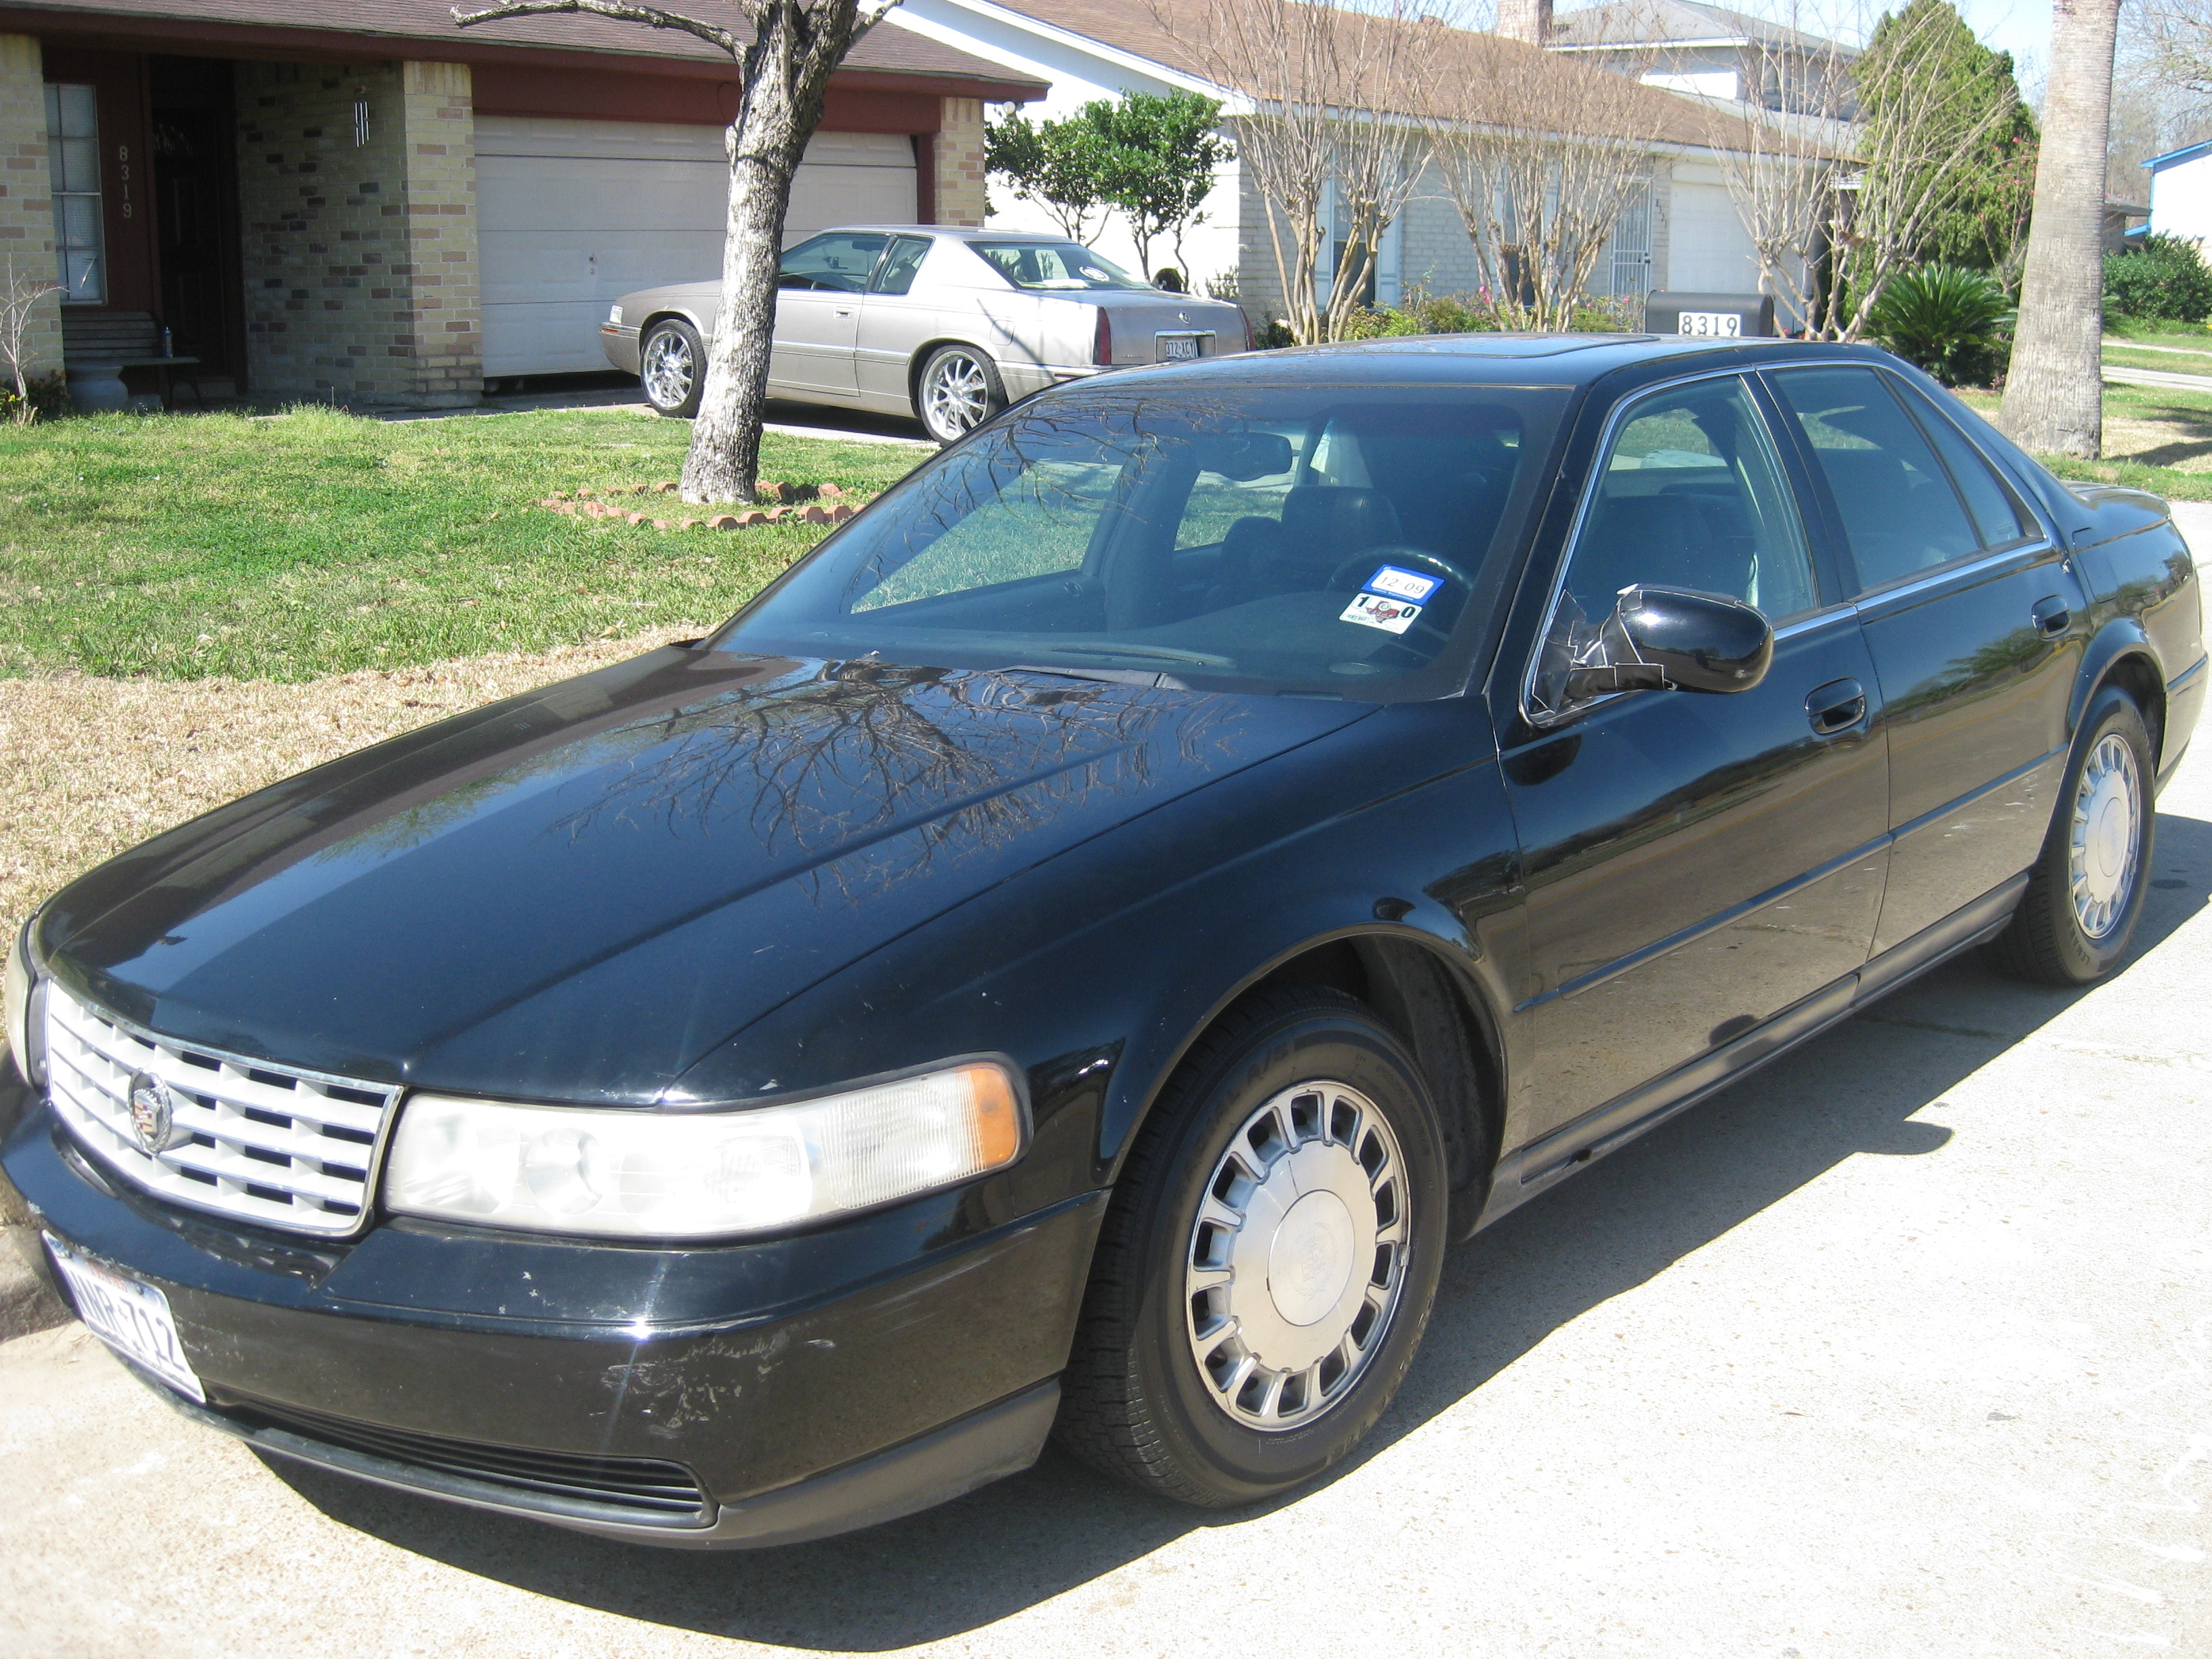 talamant3s 39 s 2000 cadillac seville in houston tx. Black Bedroom Furniture Sets. Home Design Ideas